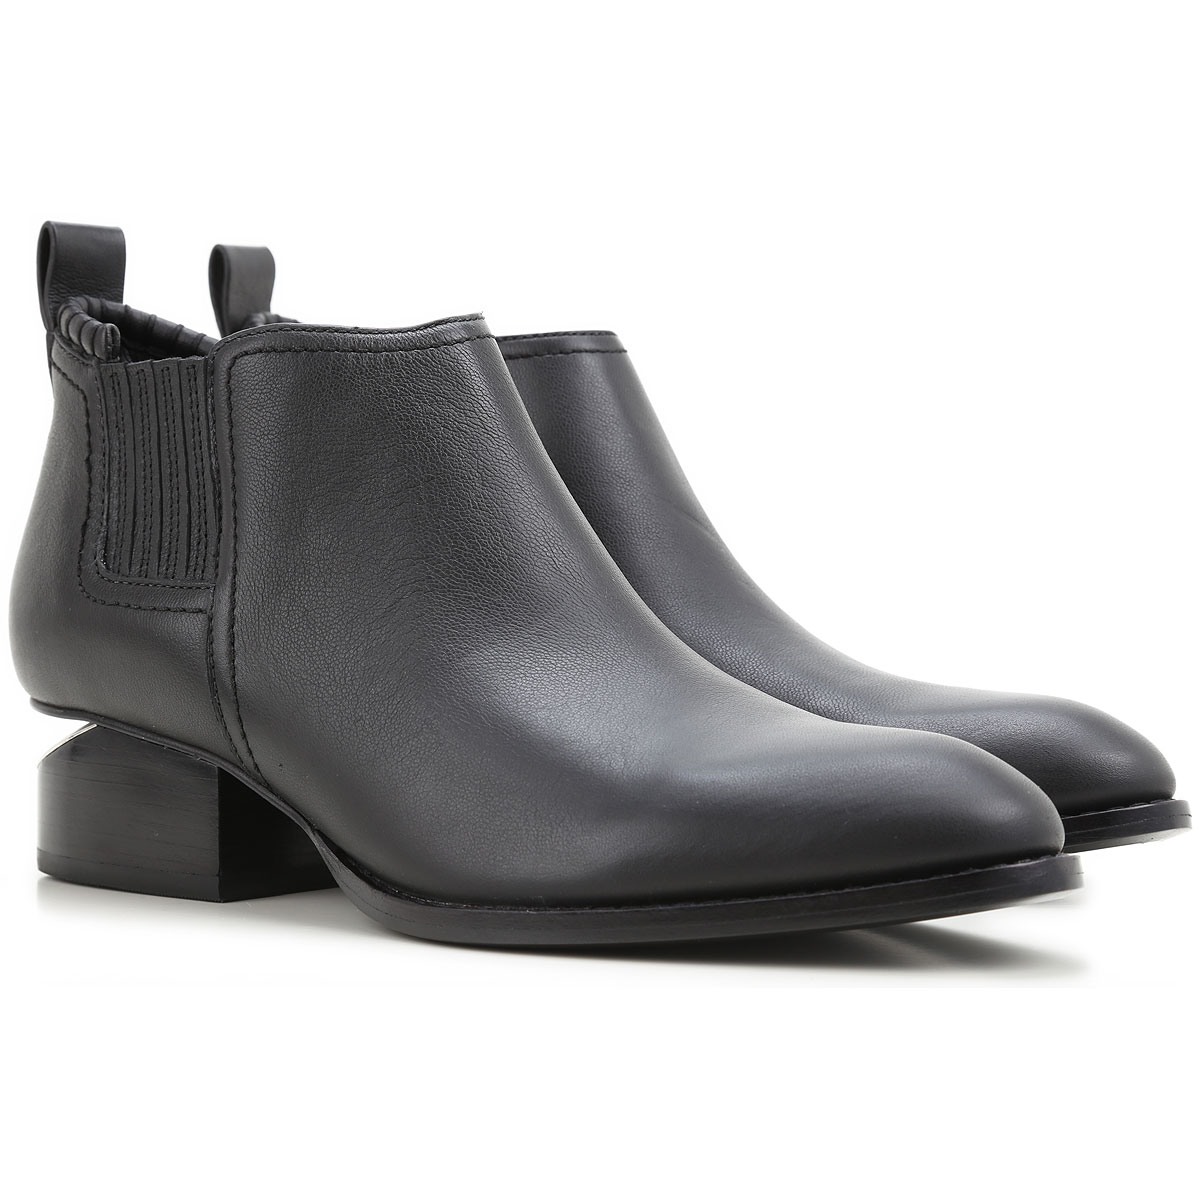 Image of Alexander Wang Boots for Women, Booties, Black, Leather, 2017, 5 5.5 6.5 7 8.5